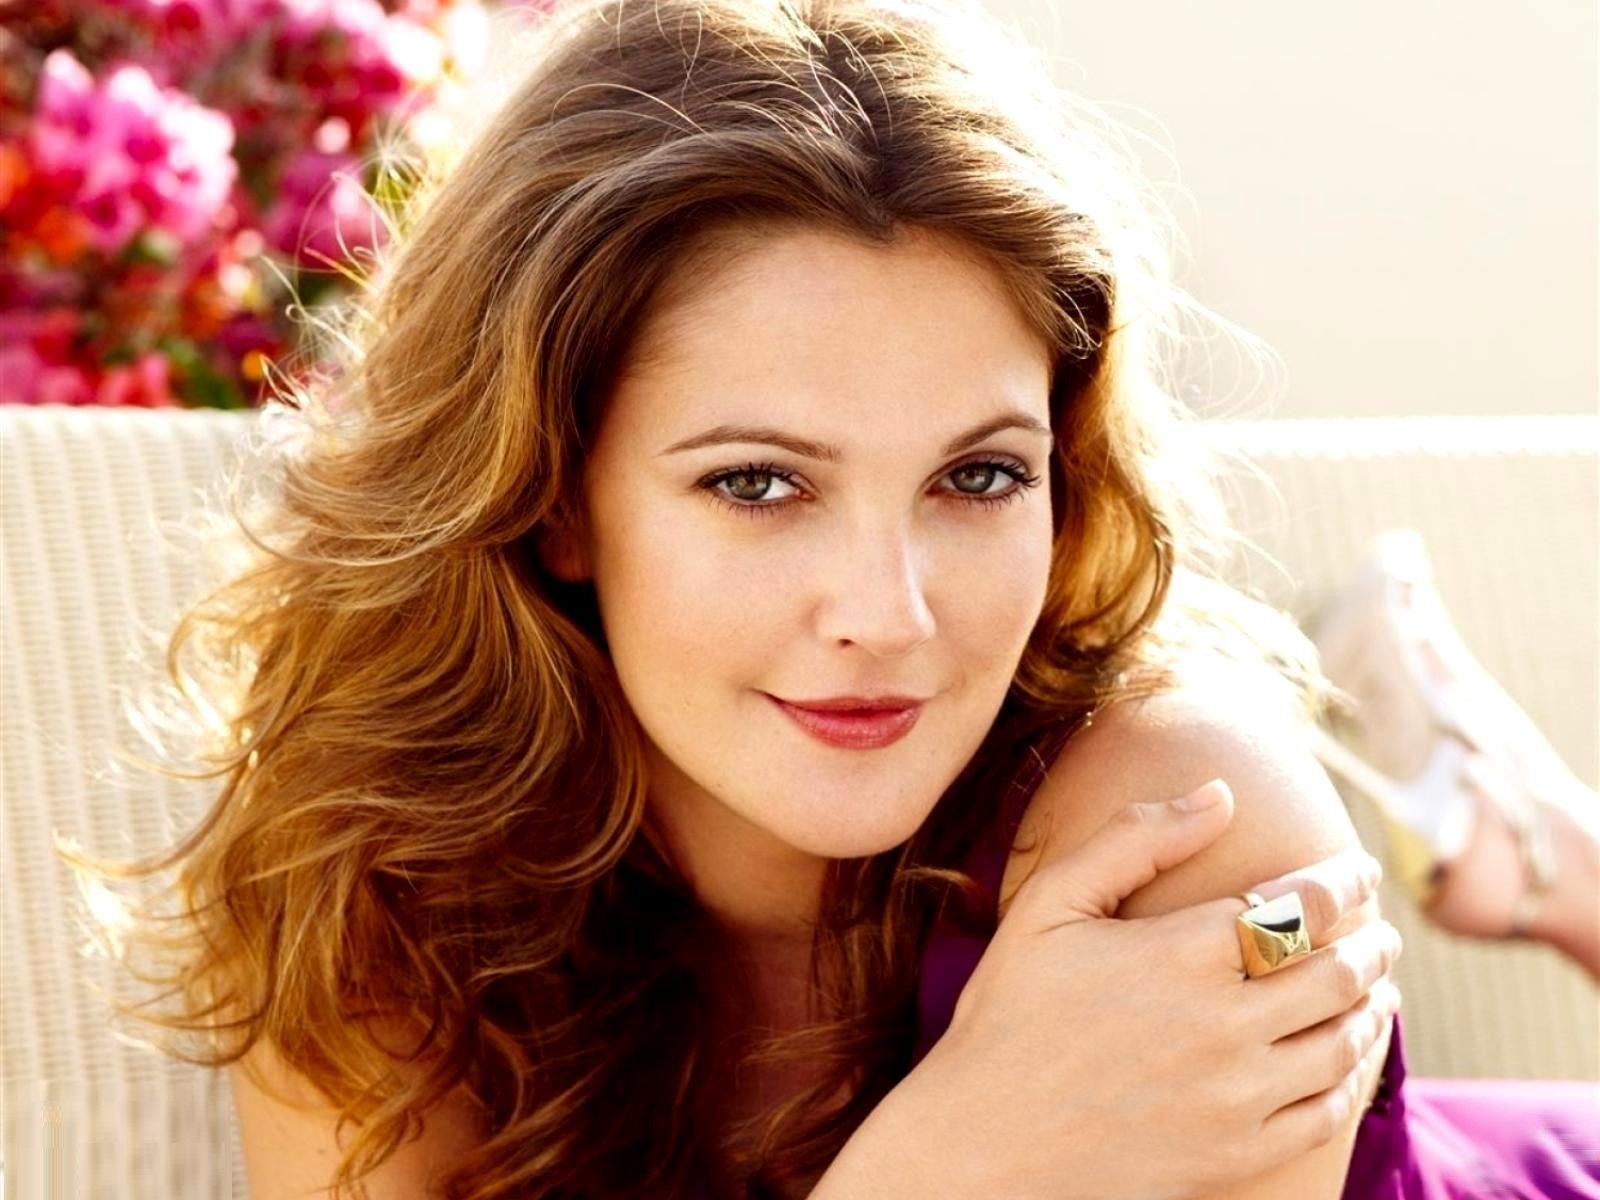 Drew Barrymore Wallpaper Drew Barrymore Wallpaper0 ...